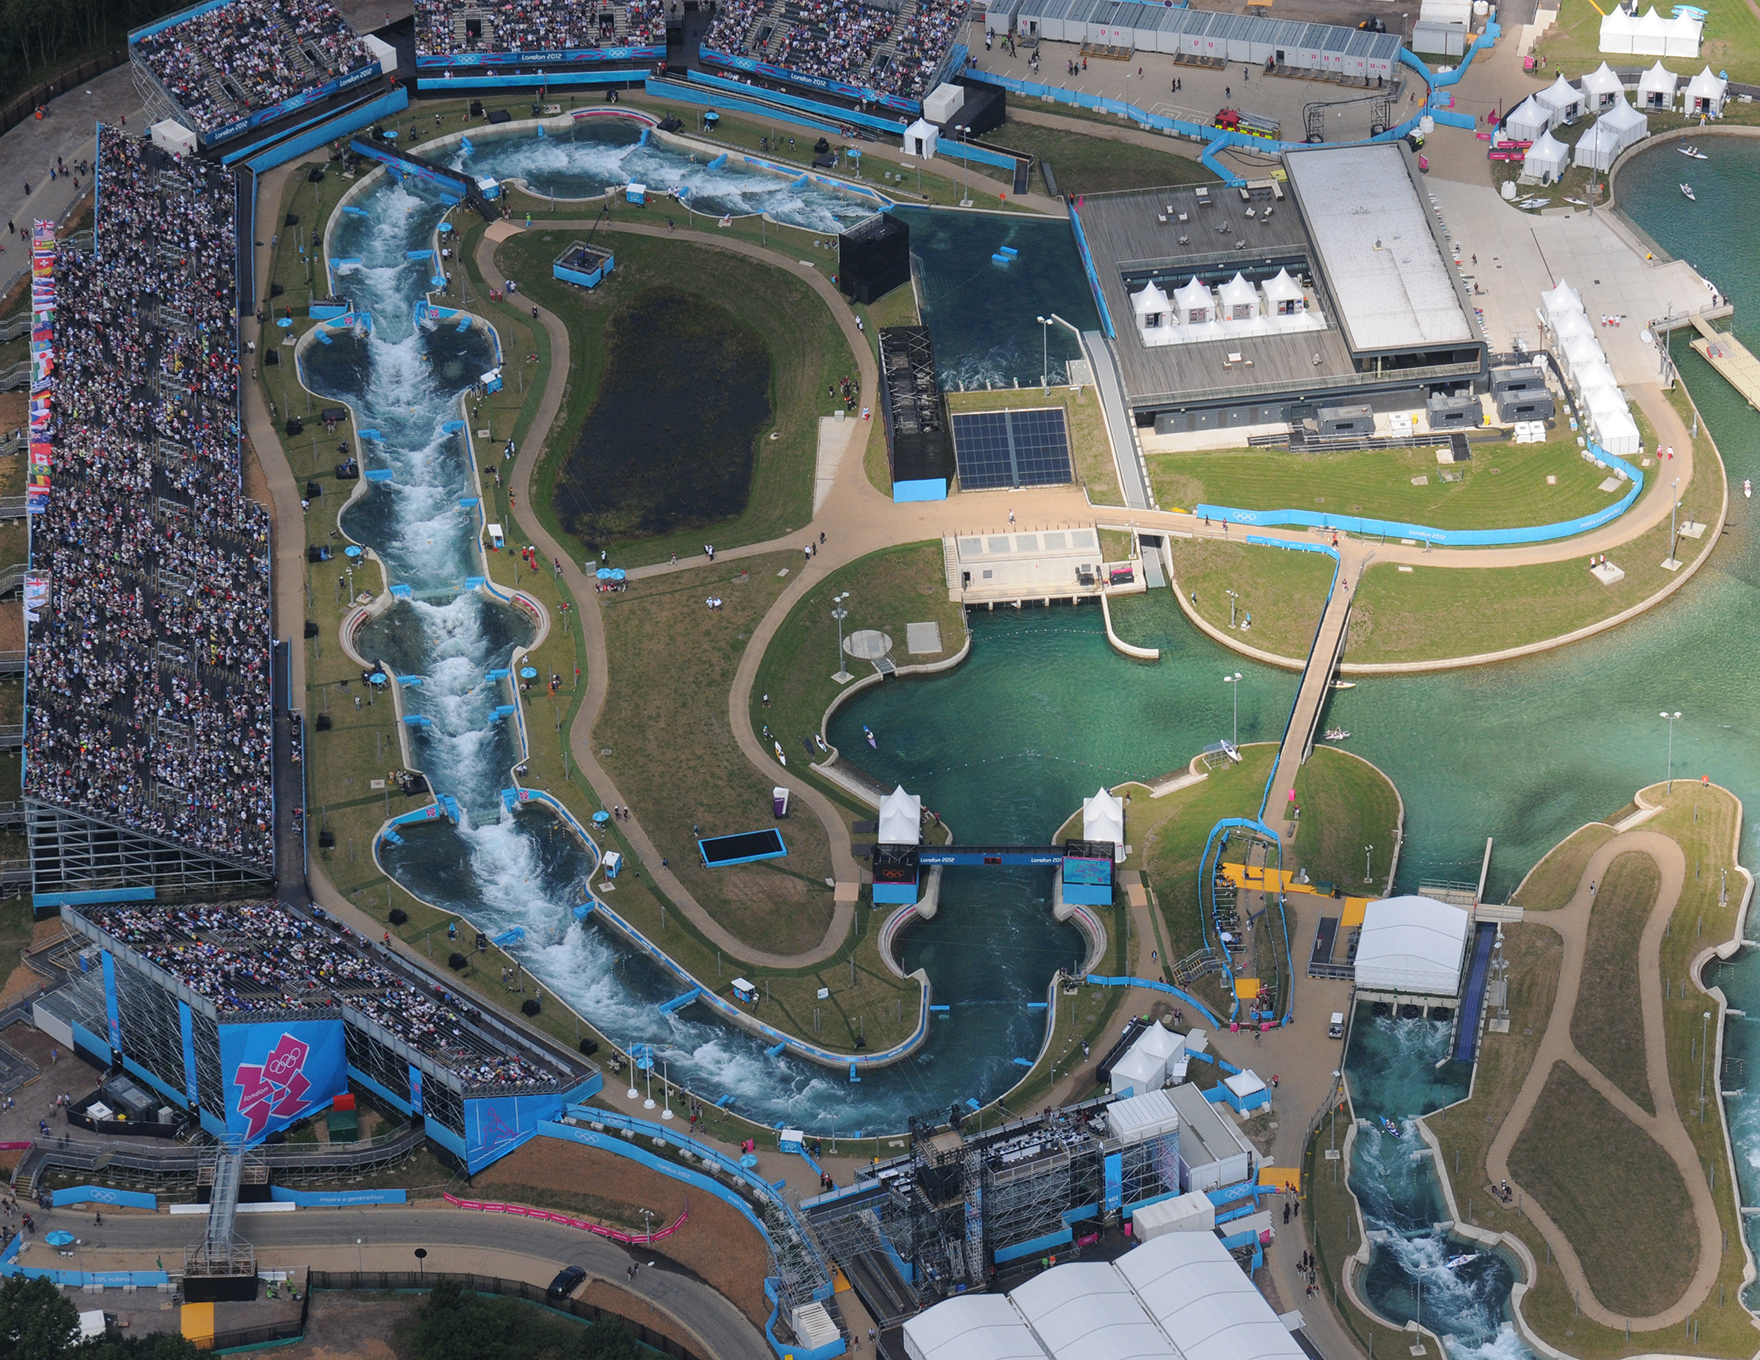 Lee Valley White Water Centre Hertfordshire London 2012 Olympic Games L